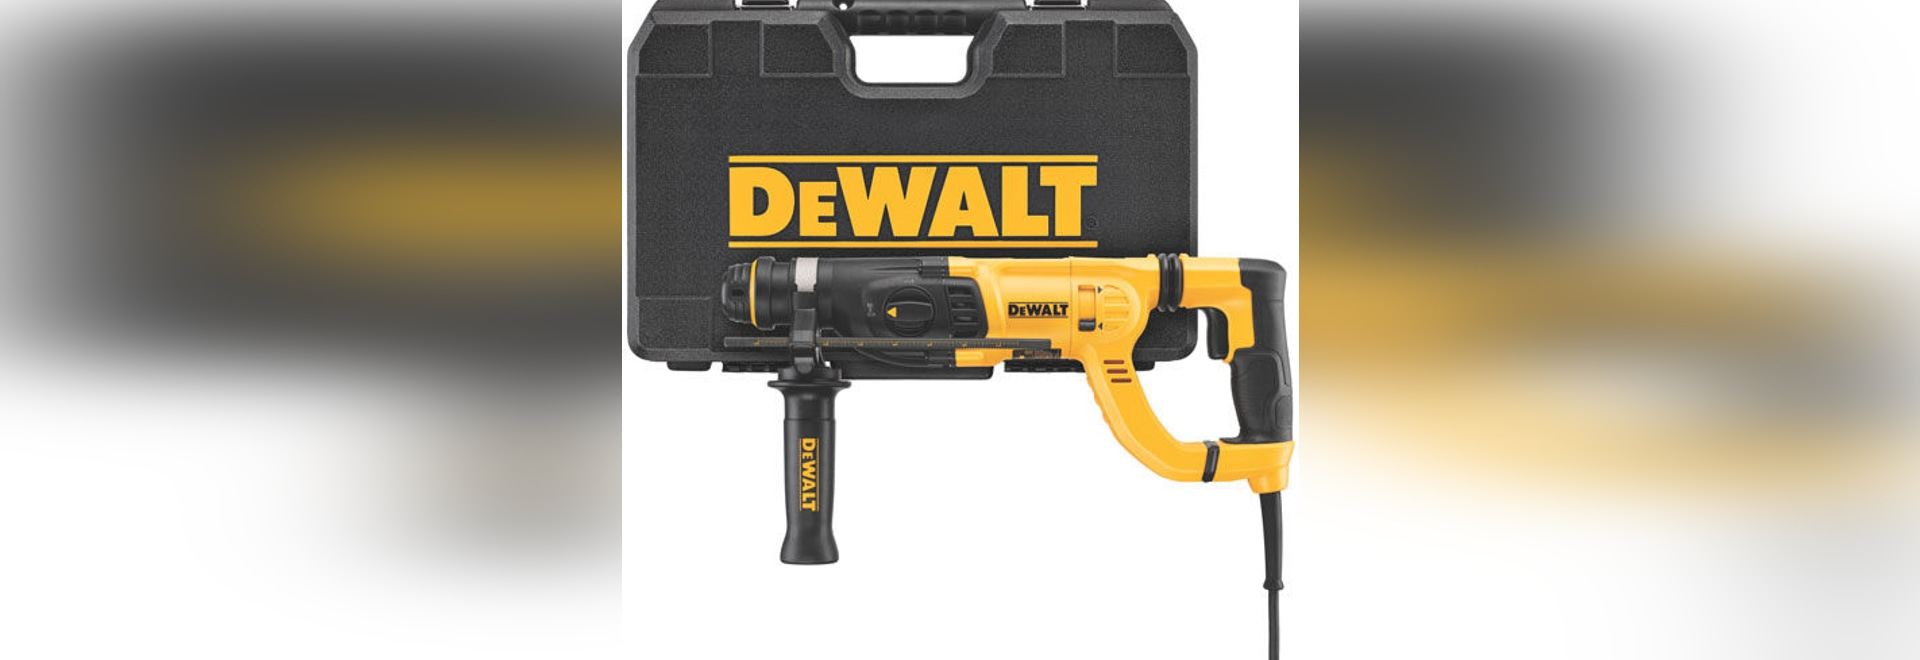 NEW: electric rotary hammer by DEWALT Industrial Tool